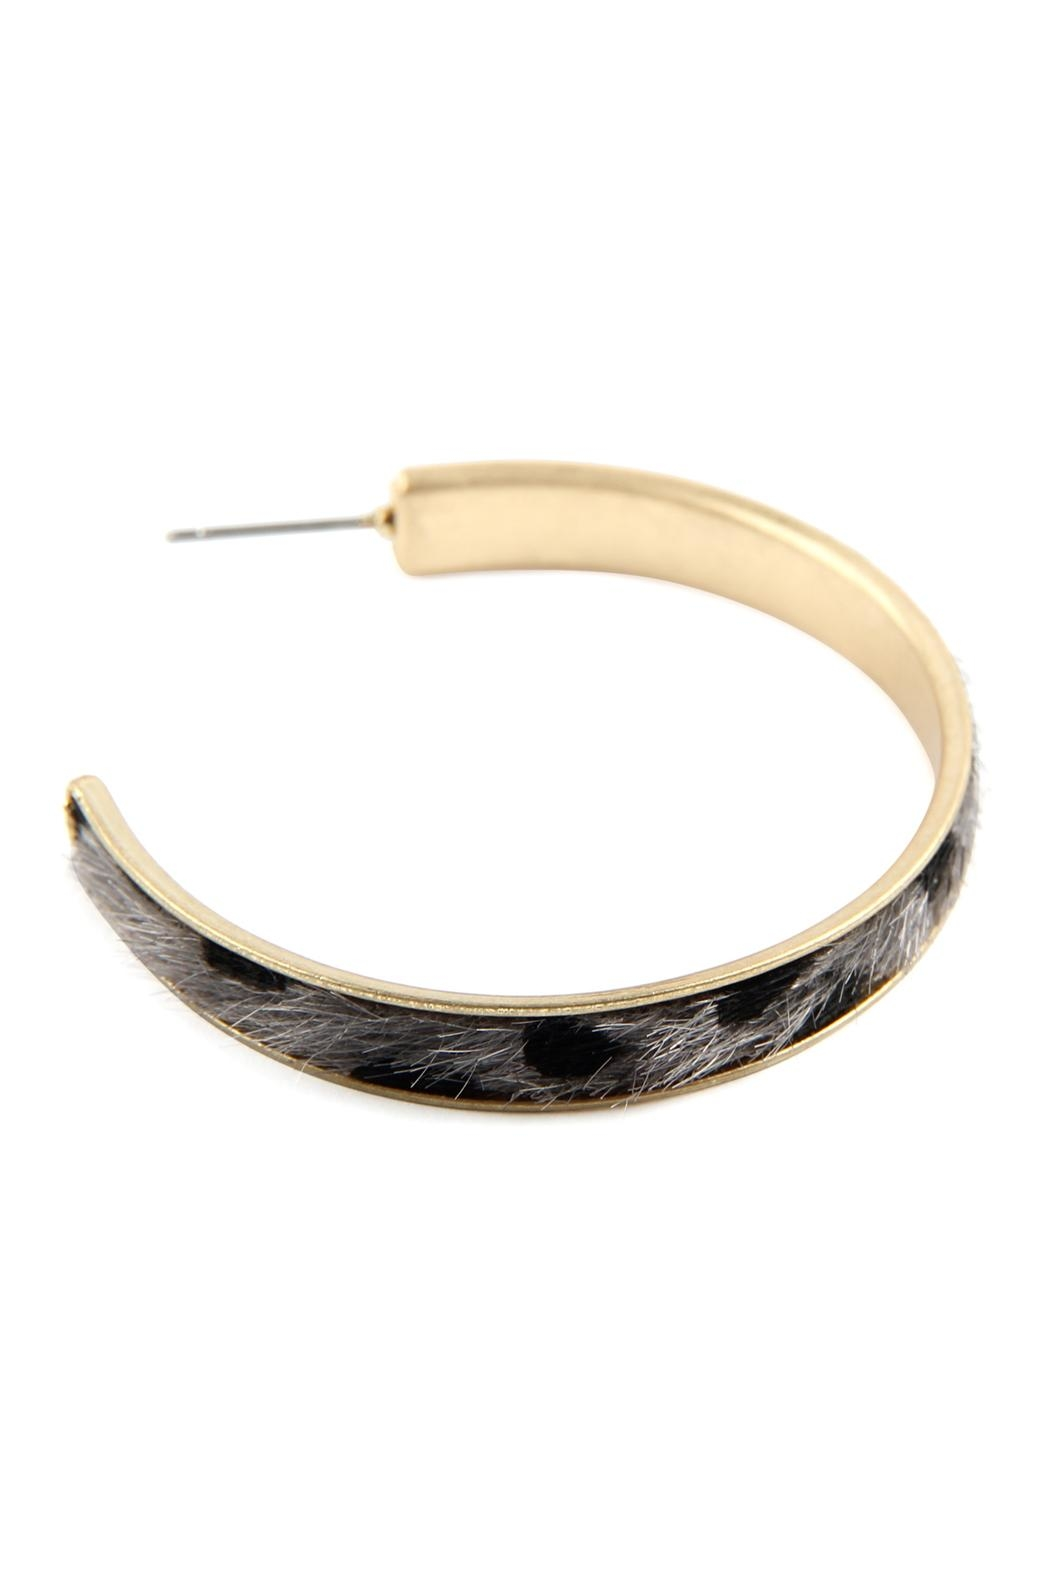 Riah Fashion Animal Print Hoop-Earrings - Front Full Image